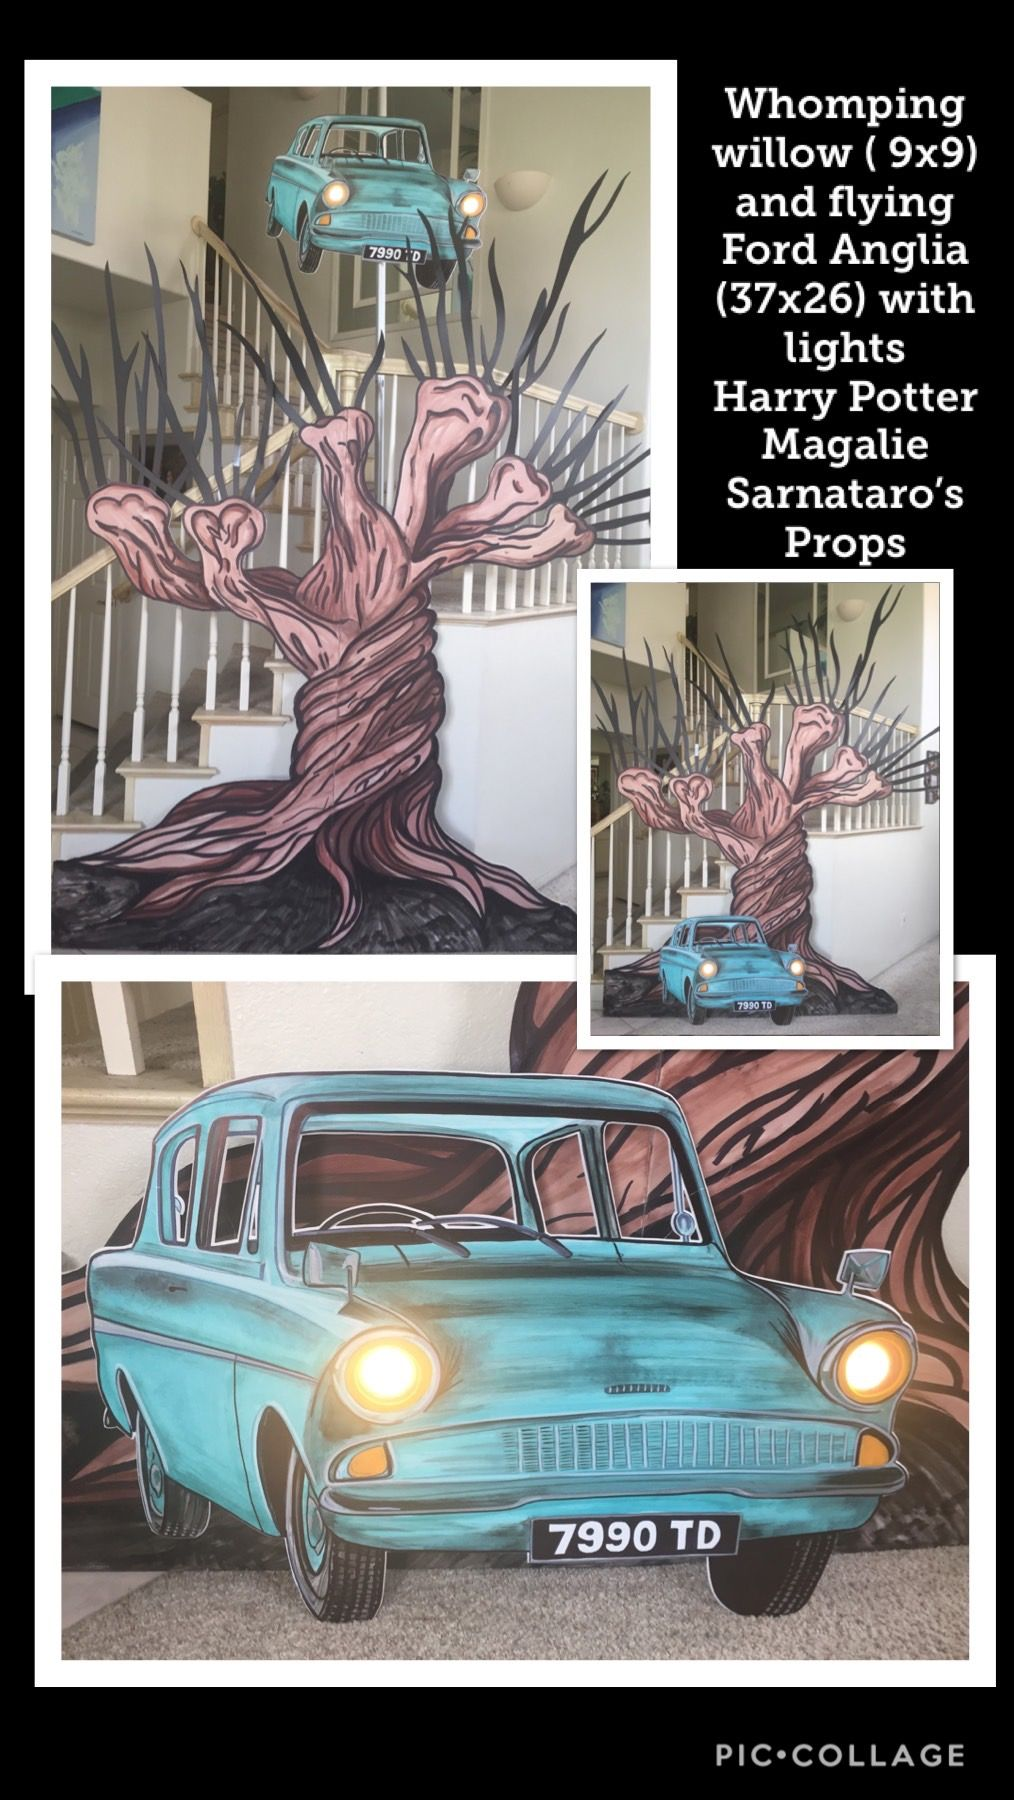 Whomping Willow And Ford Anglia Vignette Harry Potter Willow 9x9